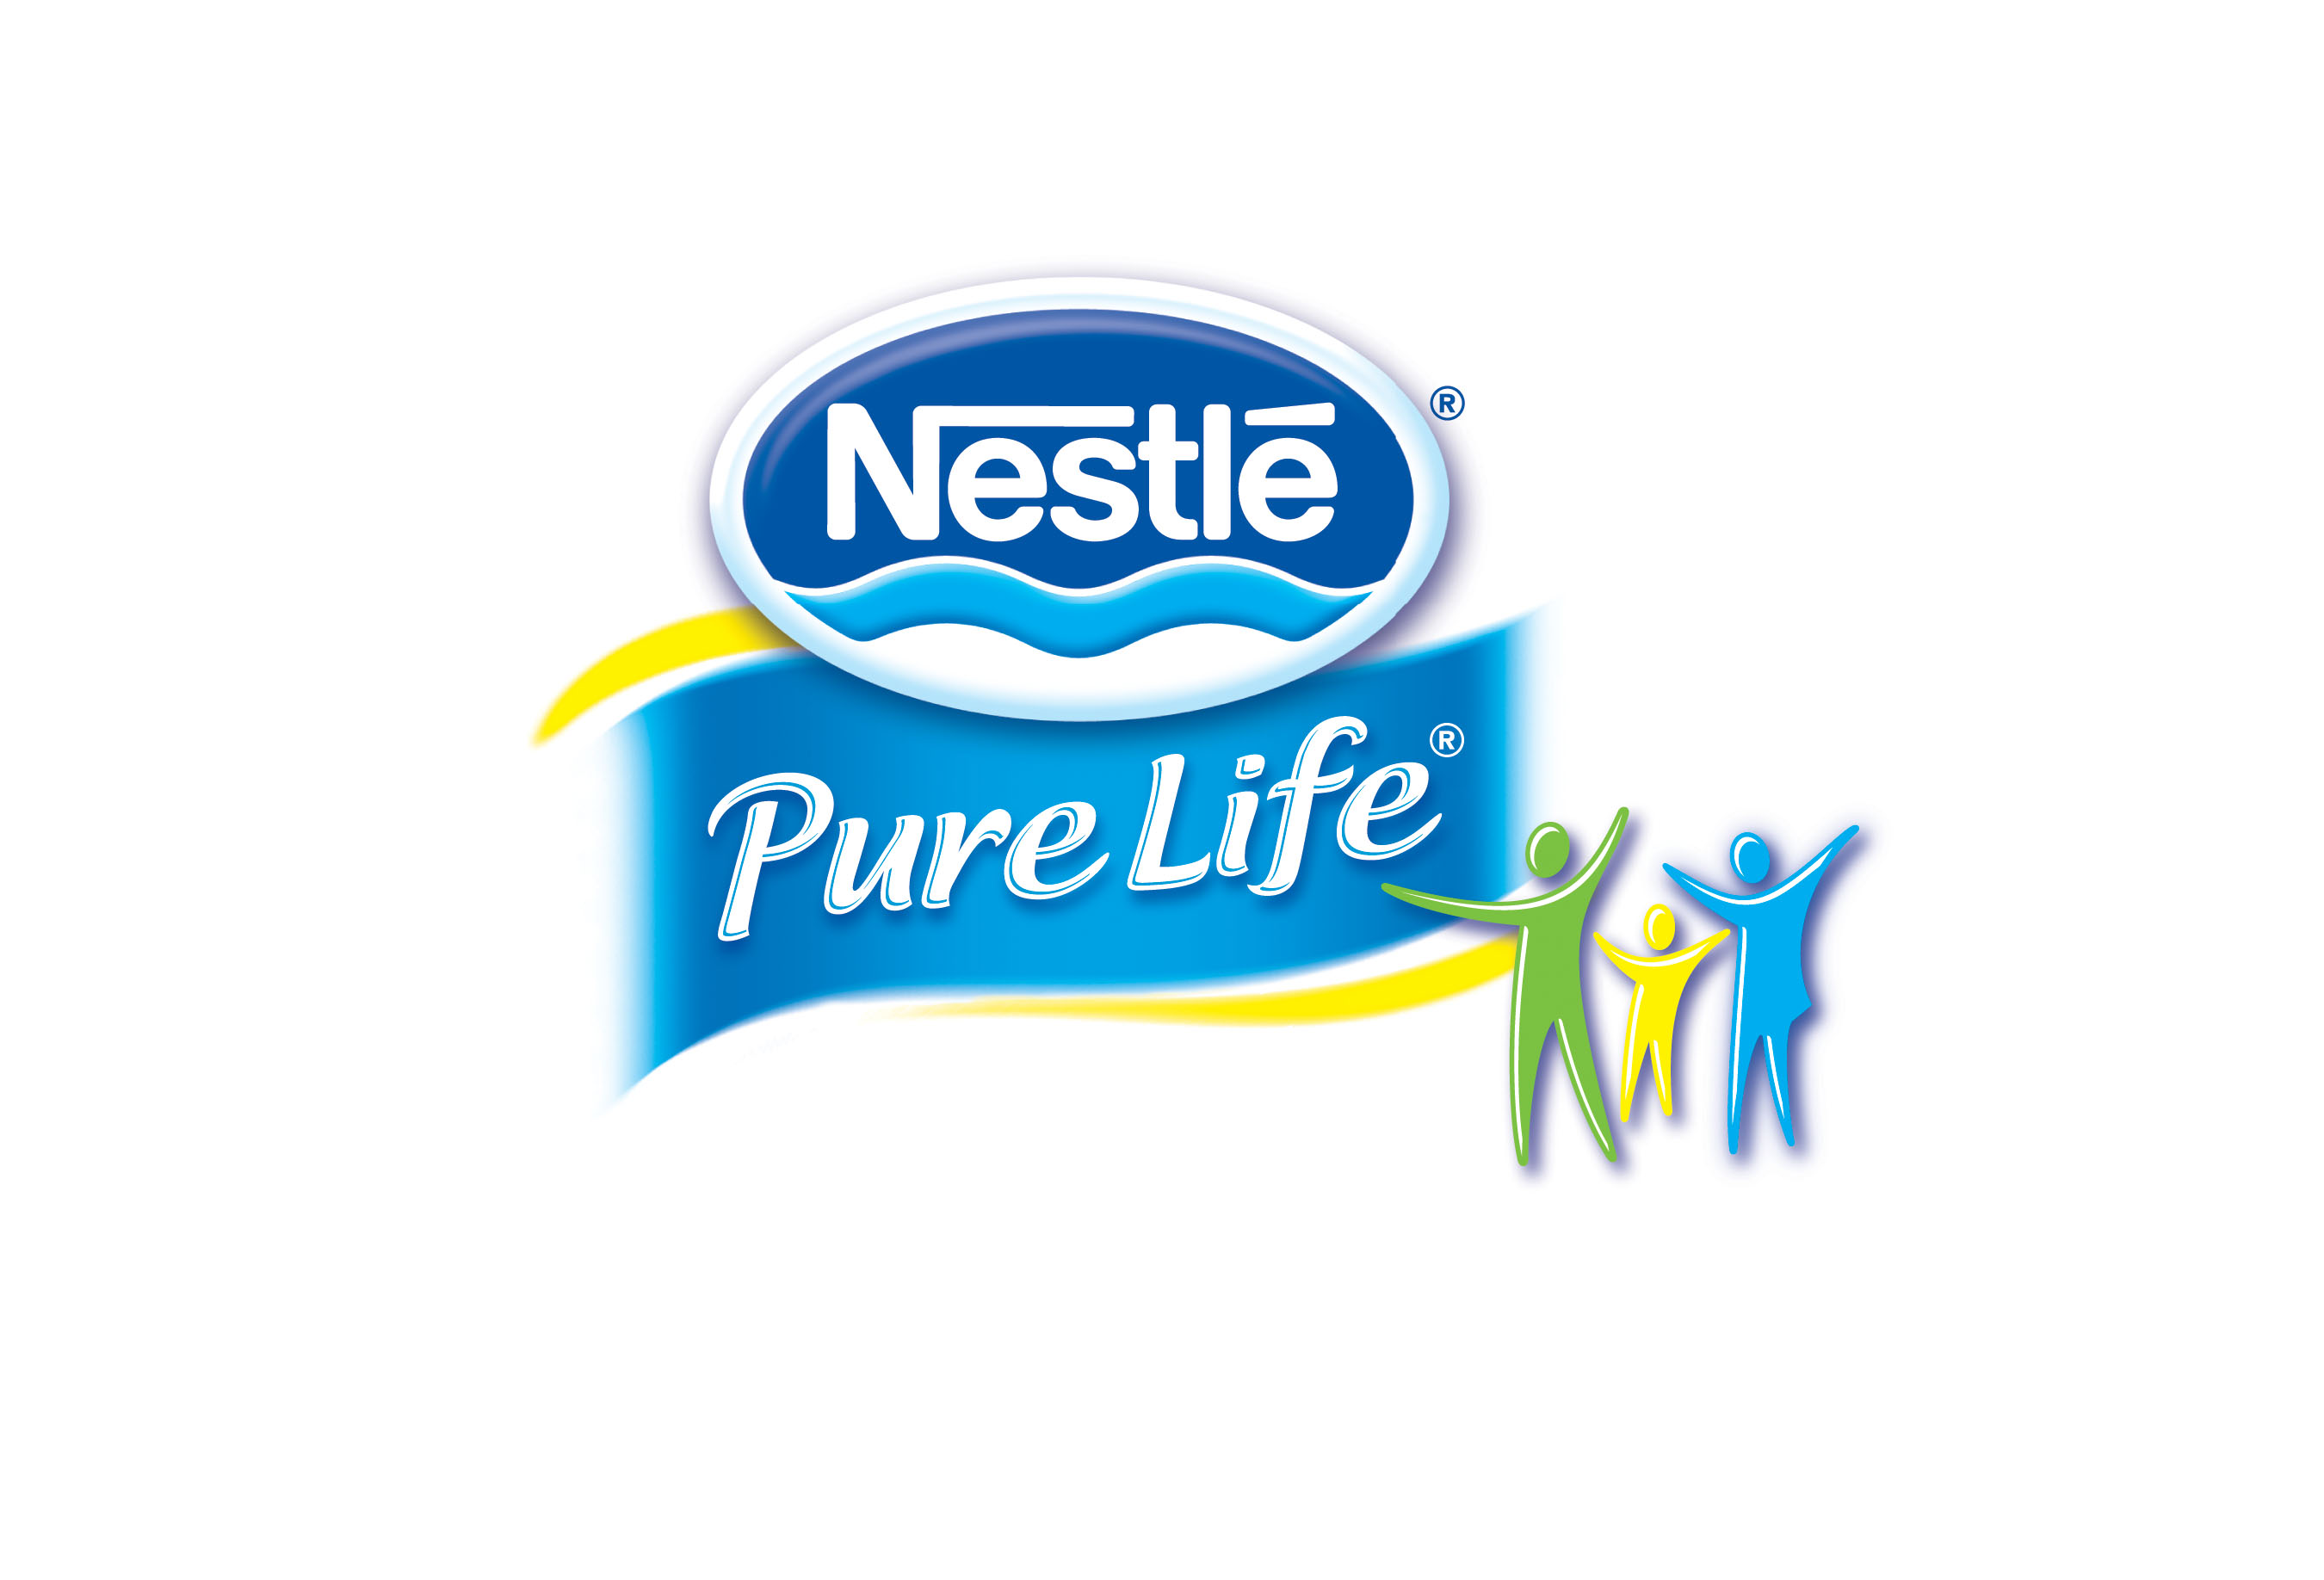 the business of water case study csr nestle We will write a custom essay sample on business ethics (nestle company)  the  competition between agriculture land and water resources from biofuels, child  labour  based on studies and researches, several cases and incidents have  been  (kinnaird, 2011) corporate social responsibility (csr) has the twin  effects of.